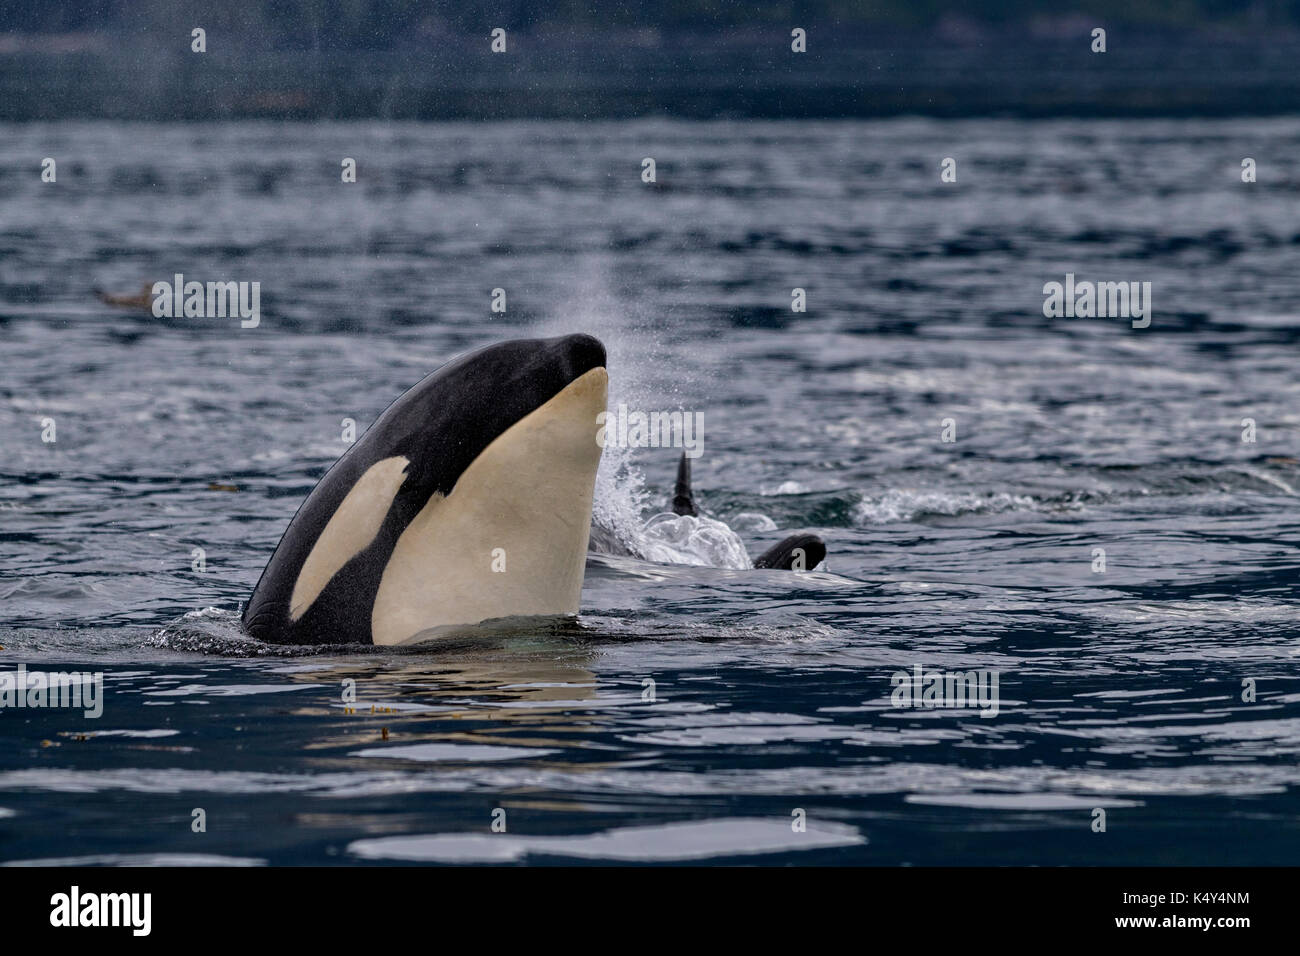 Northern resident killer whales spyhopping  in front of  Vancouver Island, British Columbi, Canada, - Stock Image